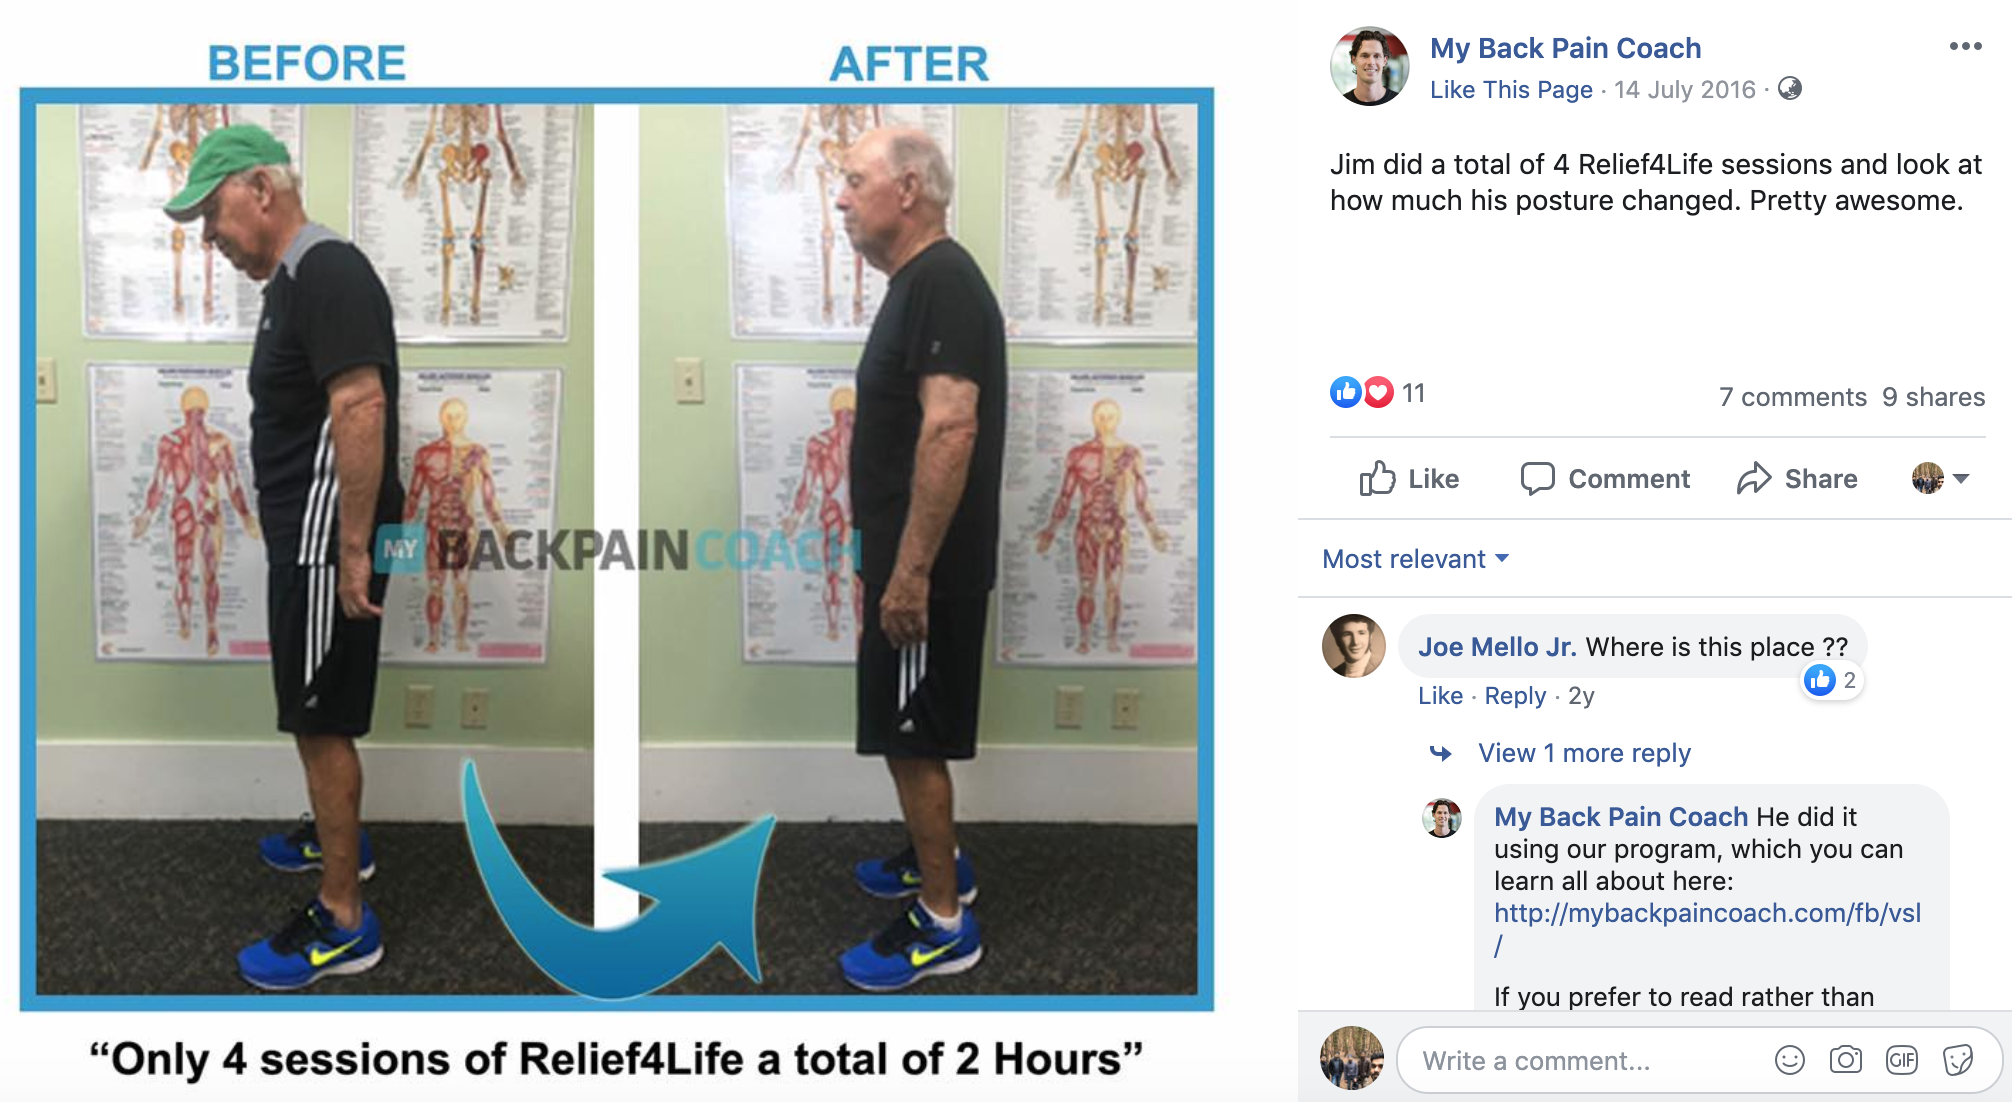 My Back Pain Coach Real Reviews